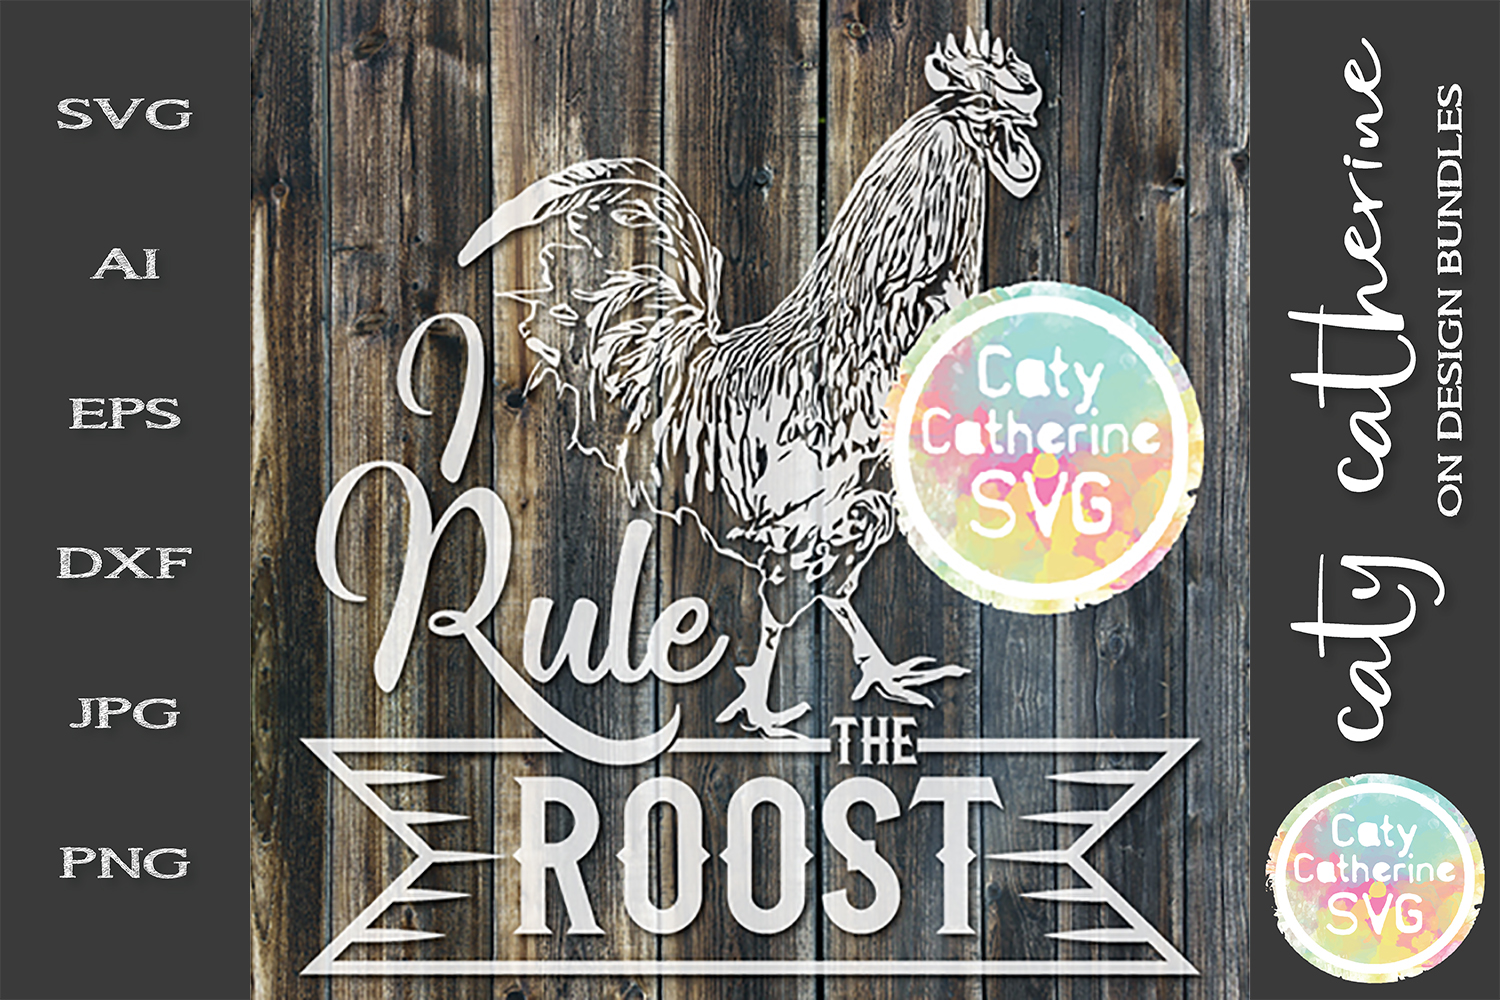 I Rule The Roost I Rule The Rooster Couples Matching SVG example image 3